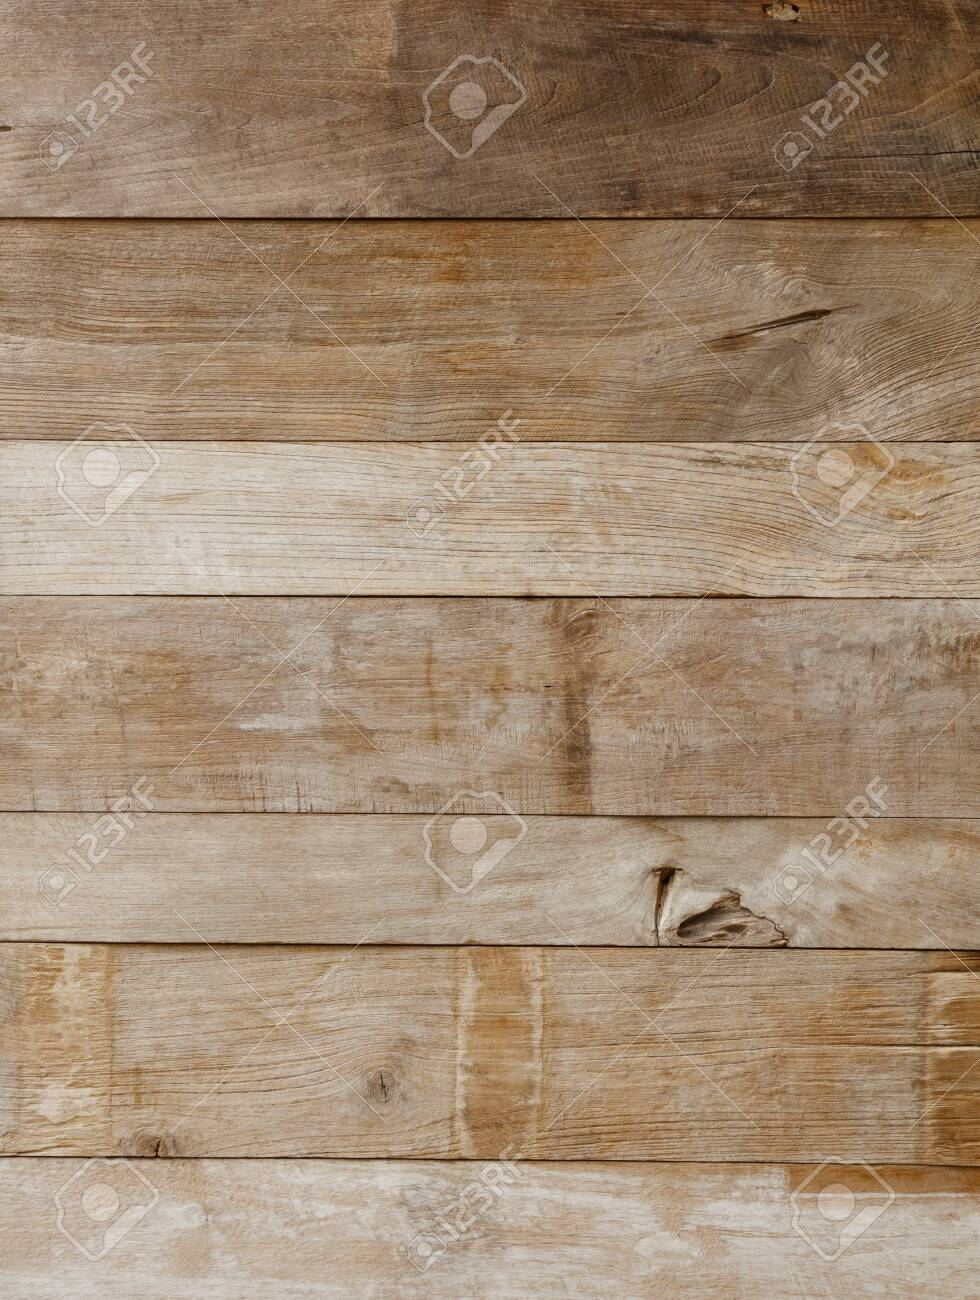 wooden wall background - 129195304